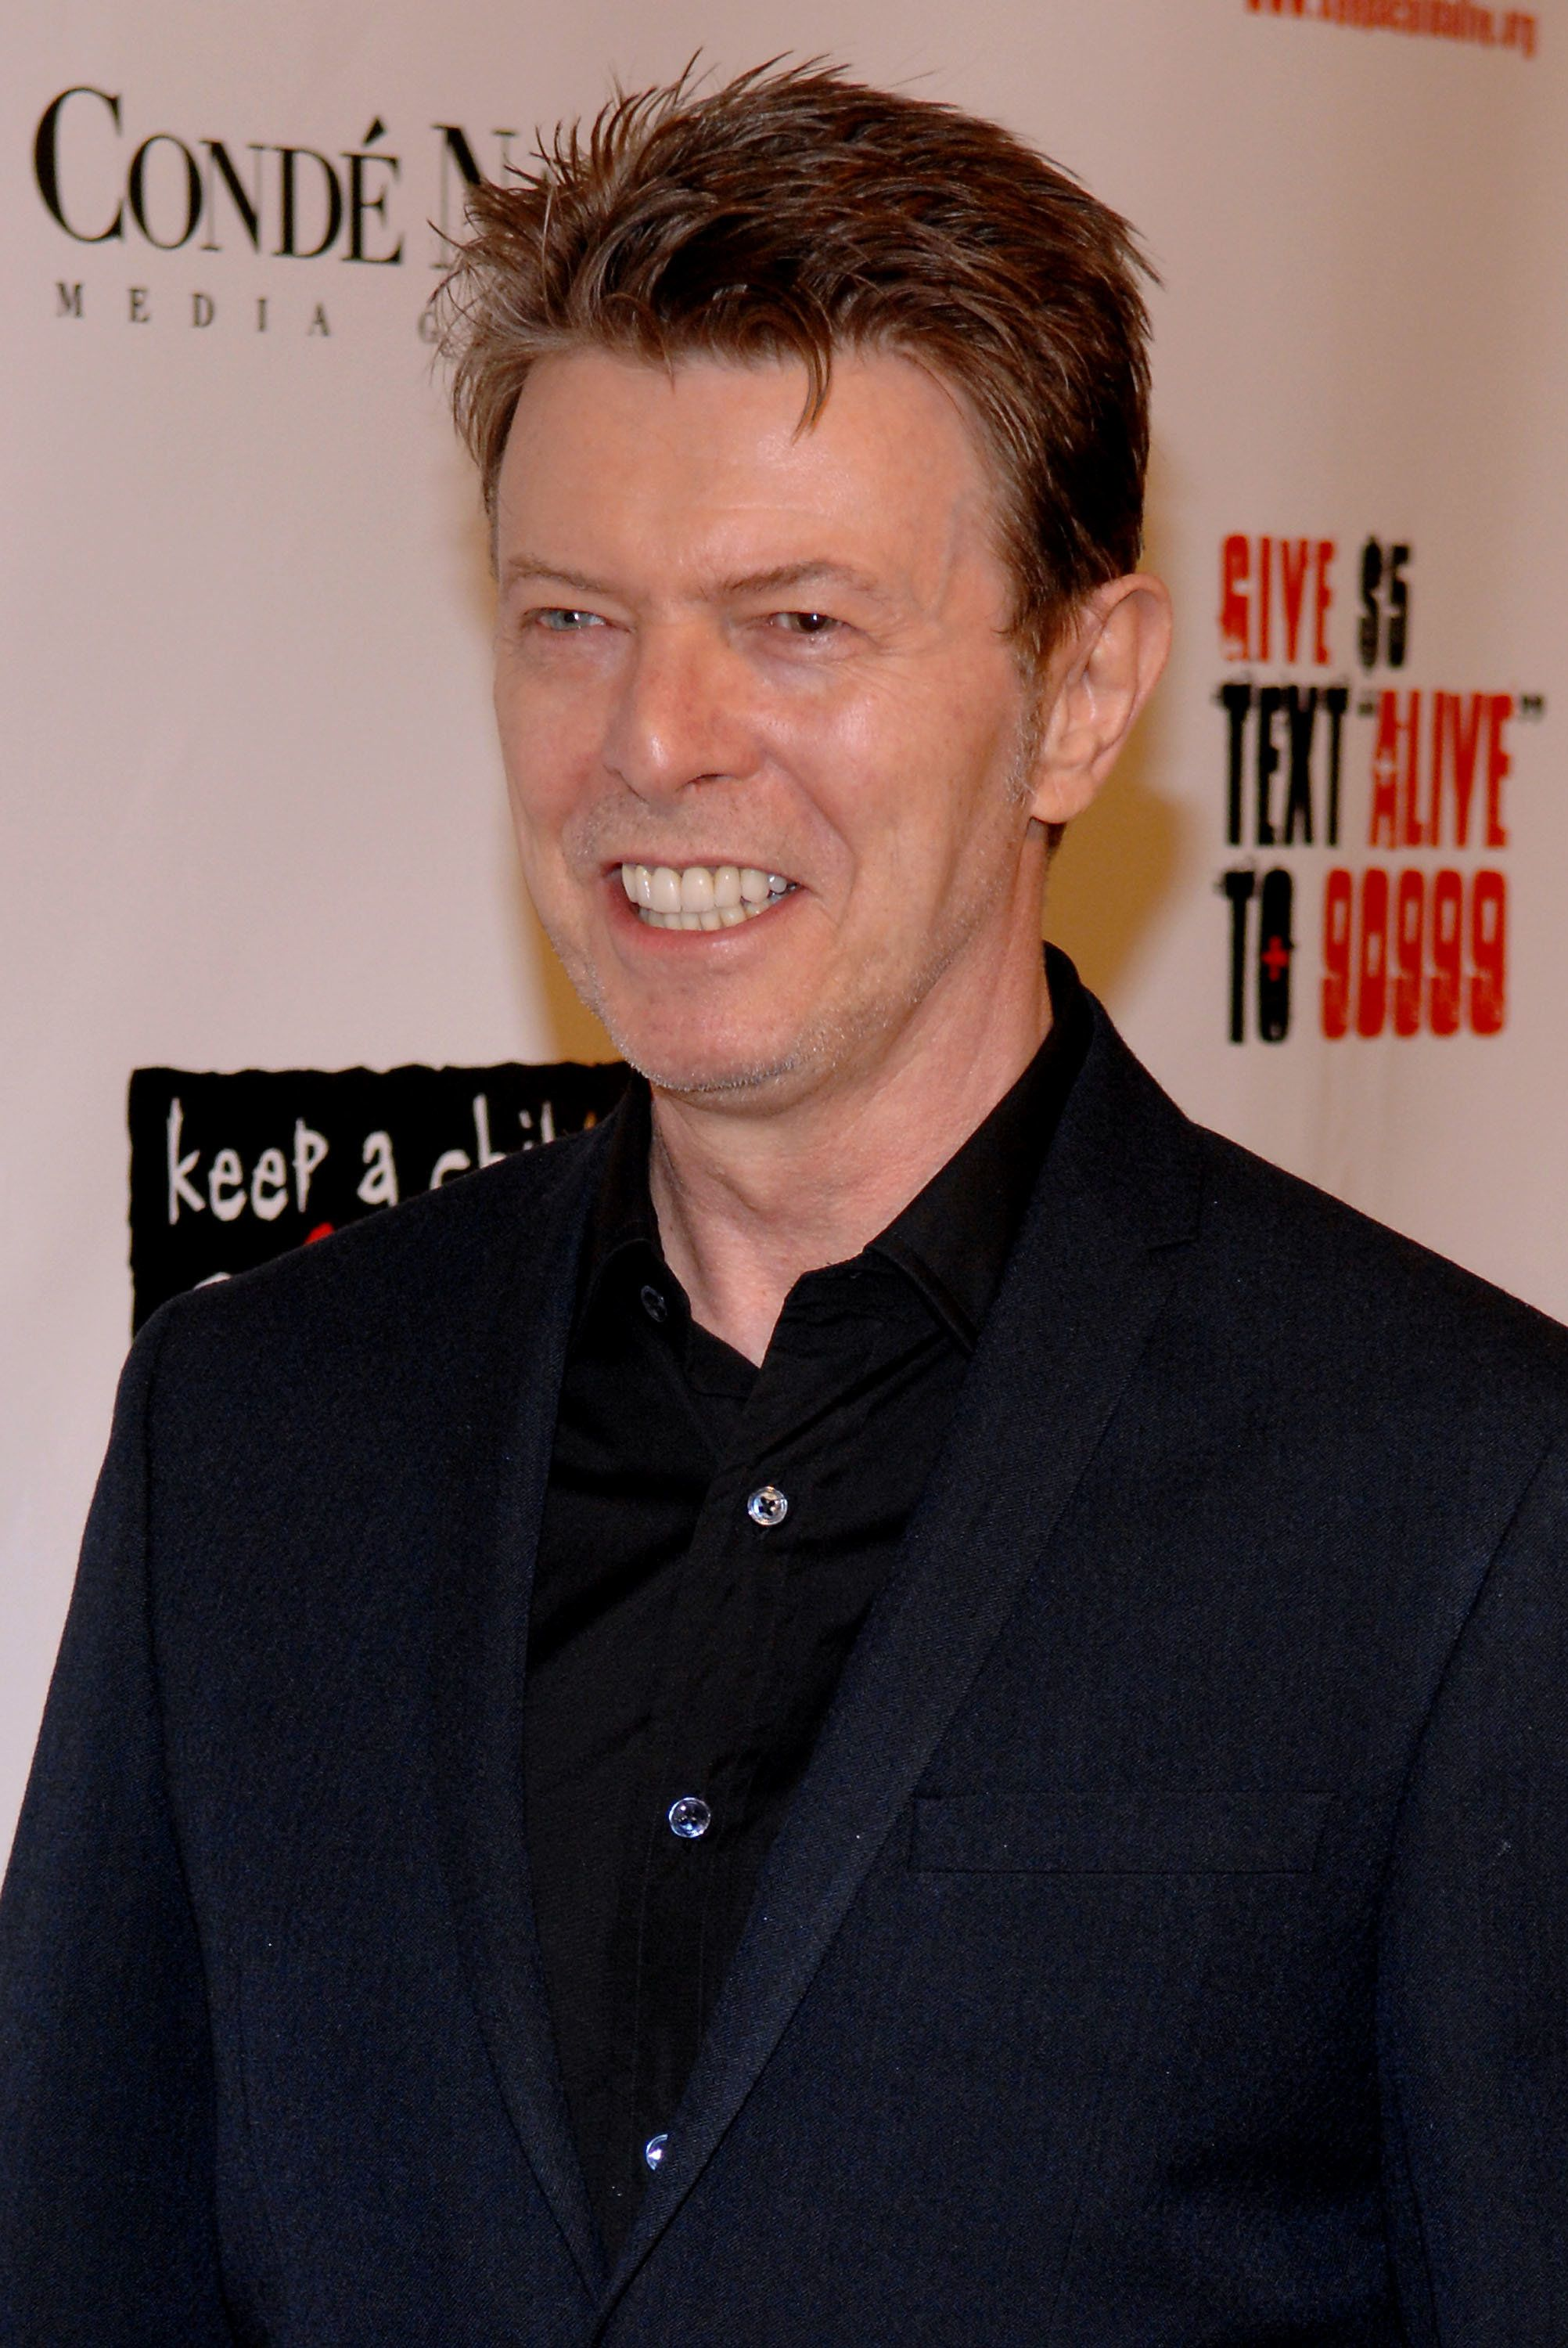 NEW YORK - NOVEMBER 13:  David Bowie attends the Keep a Child Alive organization's 5th annual Black Ball at The Hammerstein Ballroom on November 13, 2008 in New York City.  (Photo by Rob Loud/Getty Images)